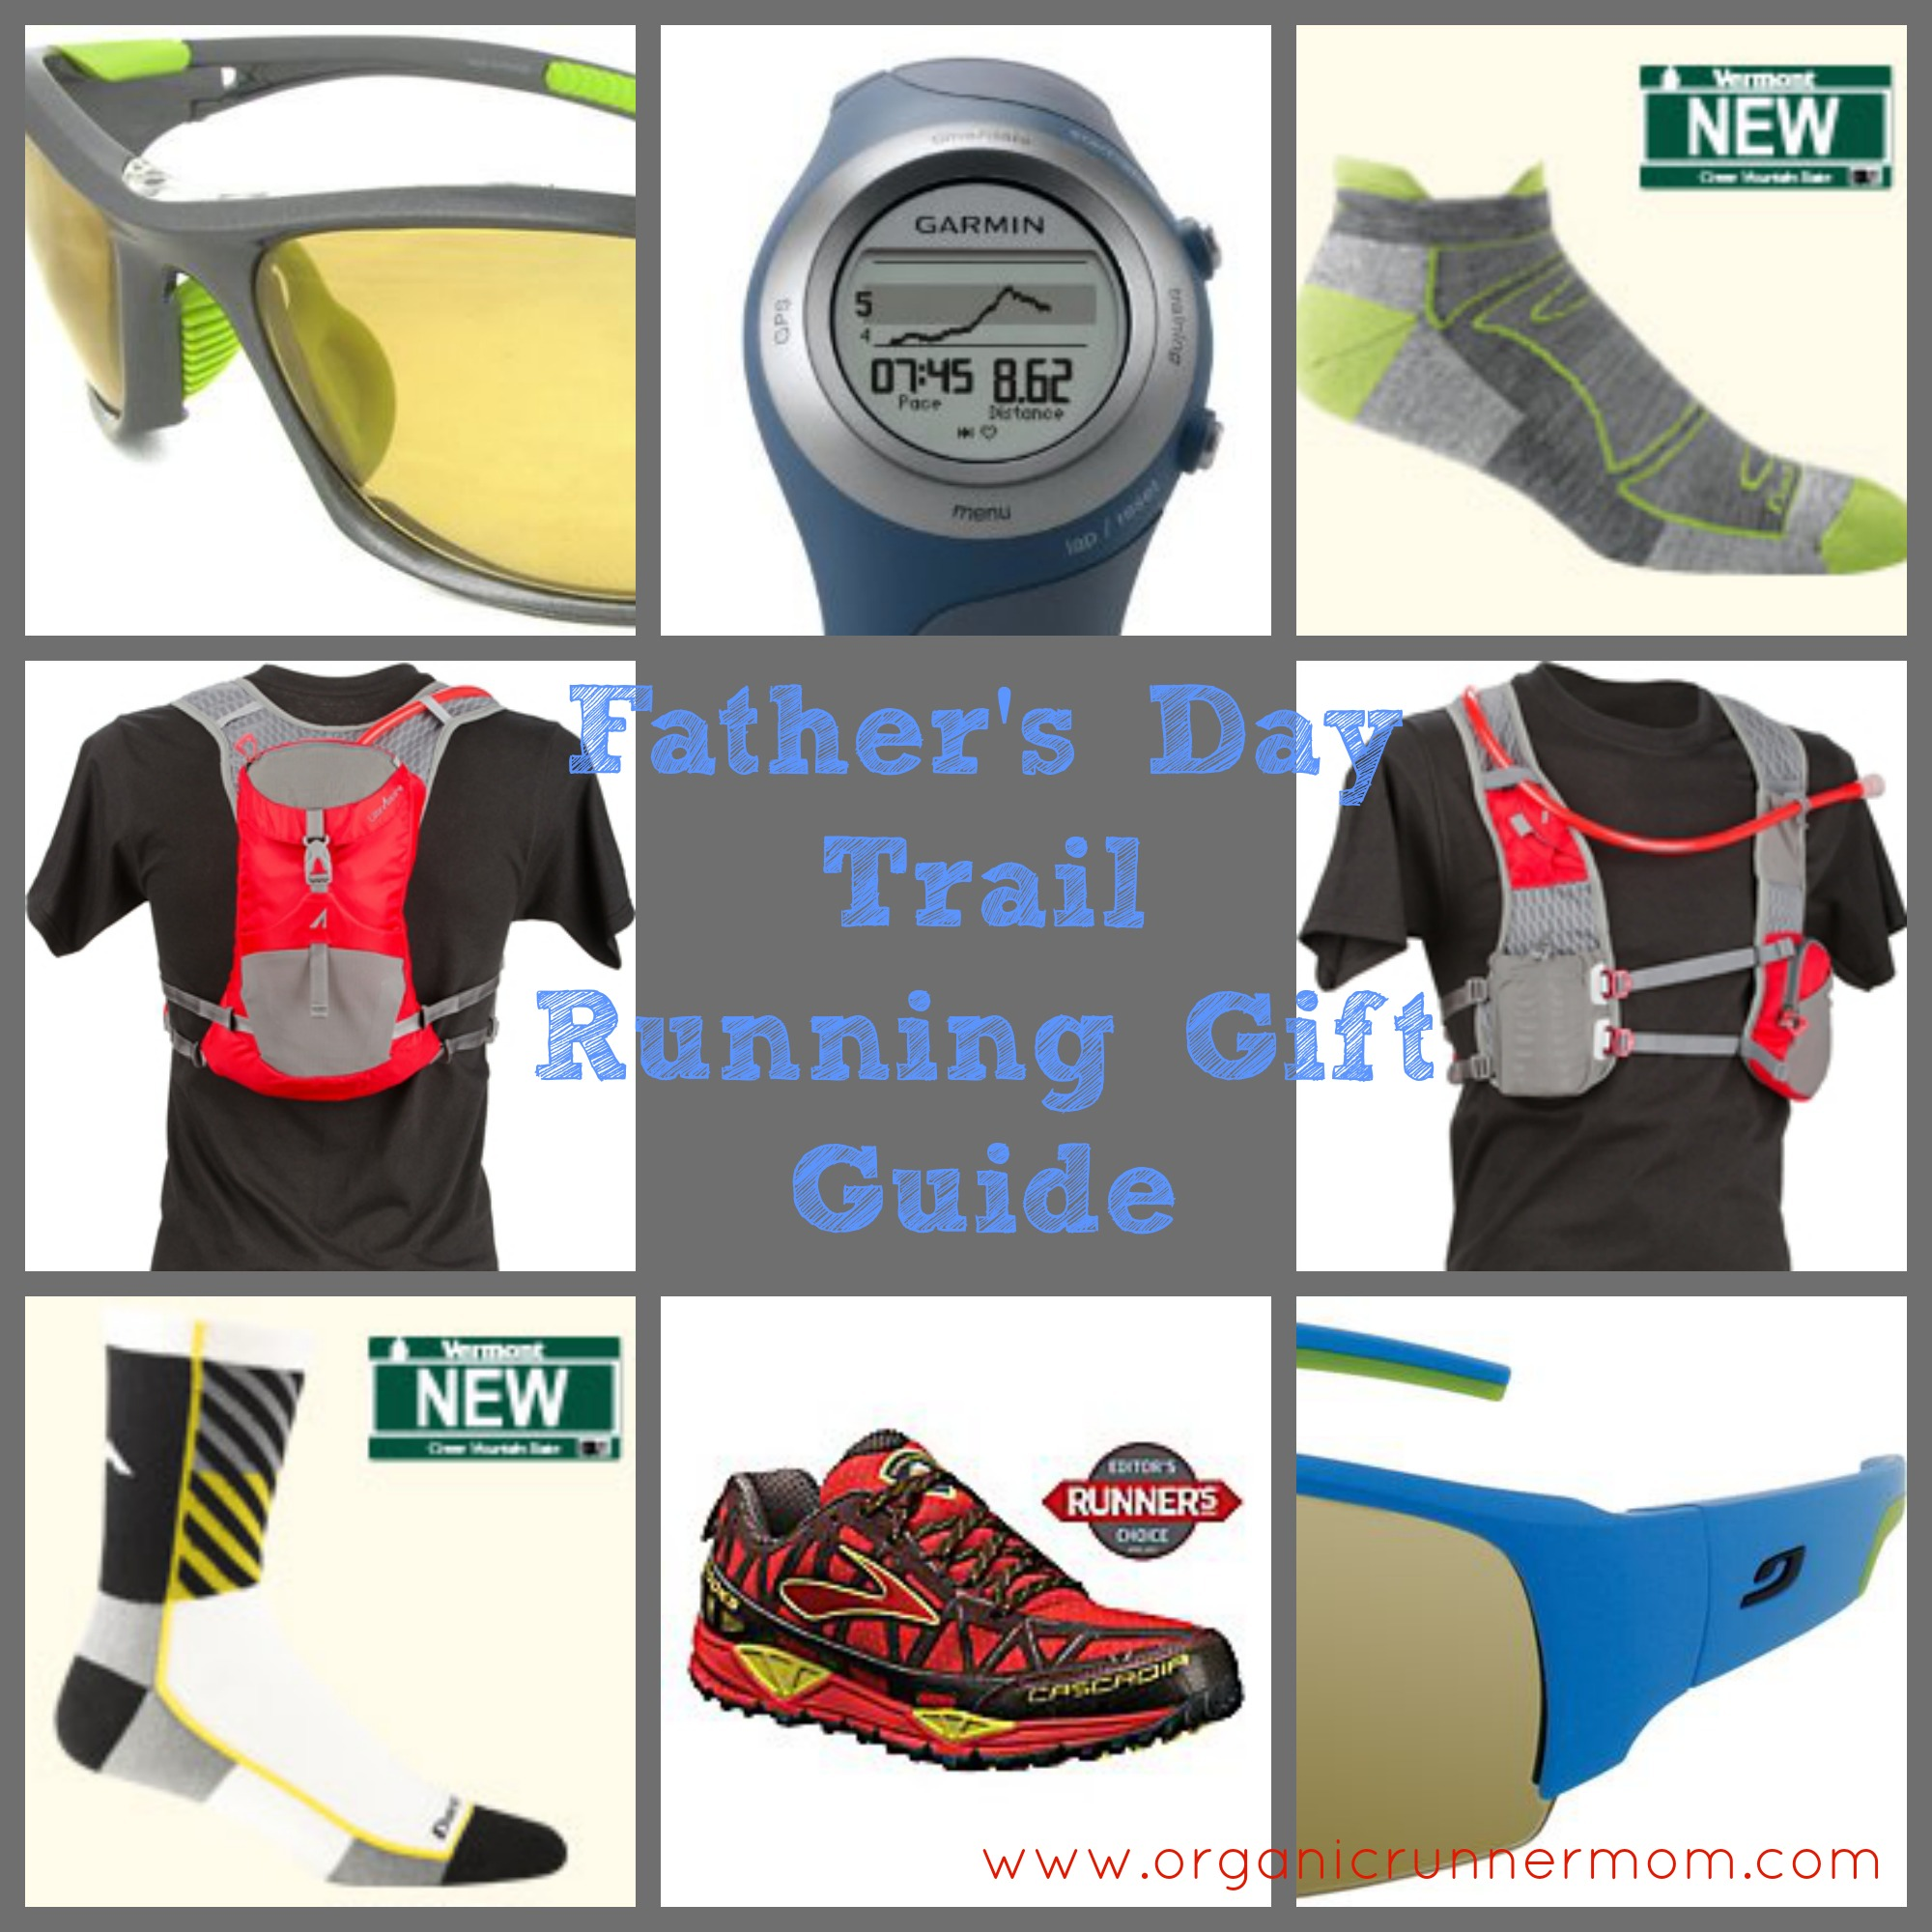 01095d2171bc Father's Day Gift Guide: Top 5 Trail Running Gifts for Dad